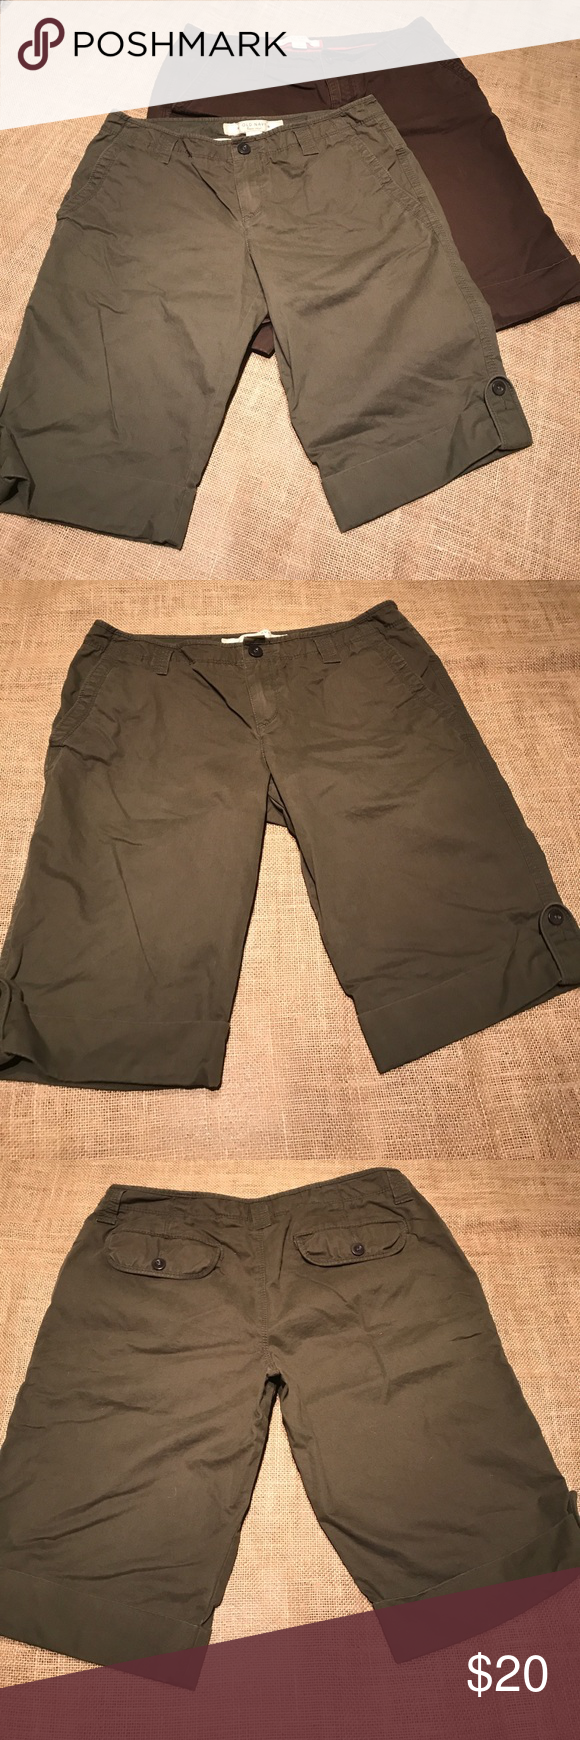 Old navy low rise Bermuda shorts Size 6. Listing is for both pairs of old navy lowrise Bermuda shorts. Colors are brown and olive. Get ready for next summer early. EUC. Old Navy Shorts Bermudas